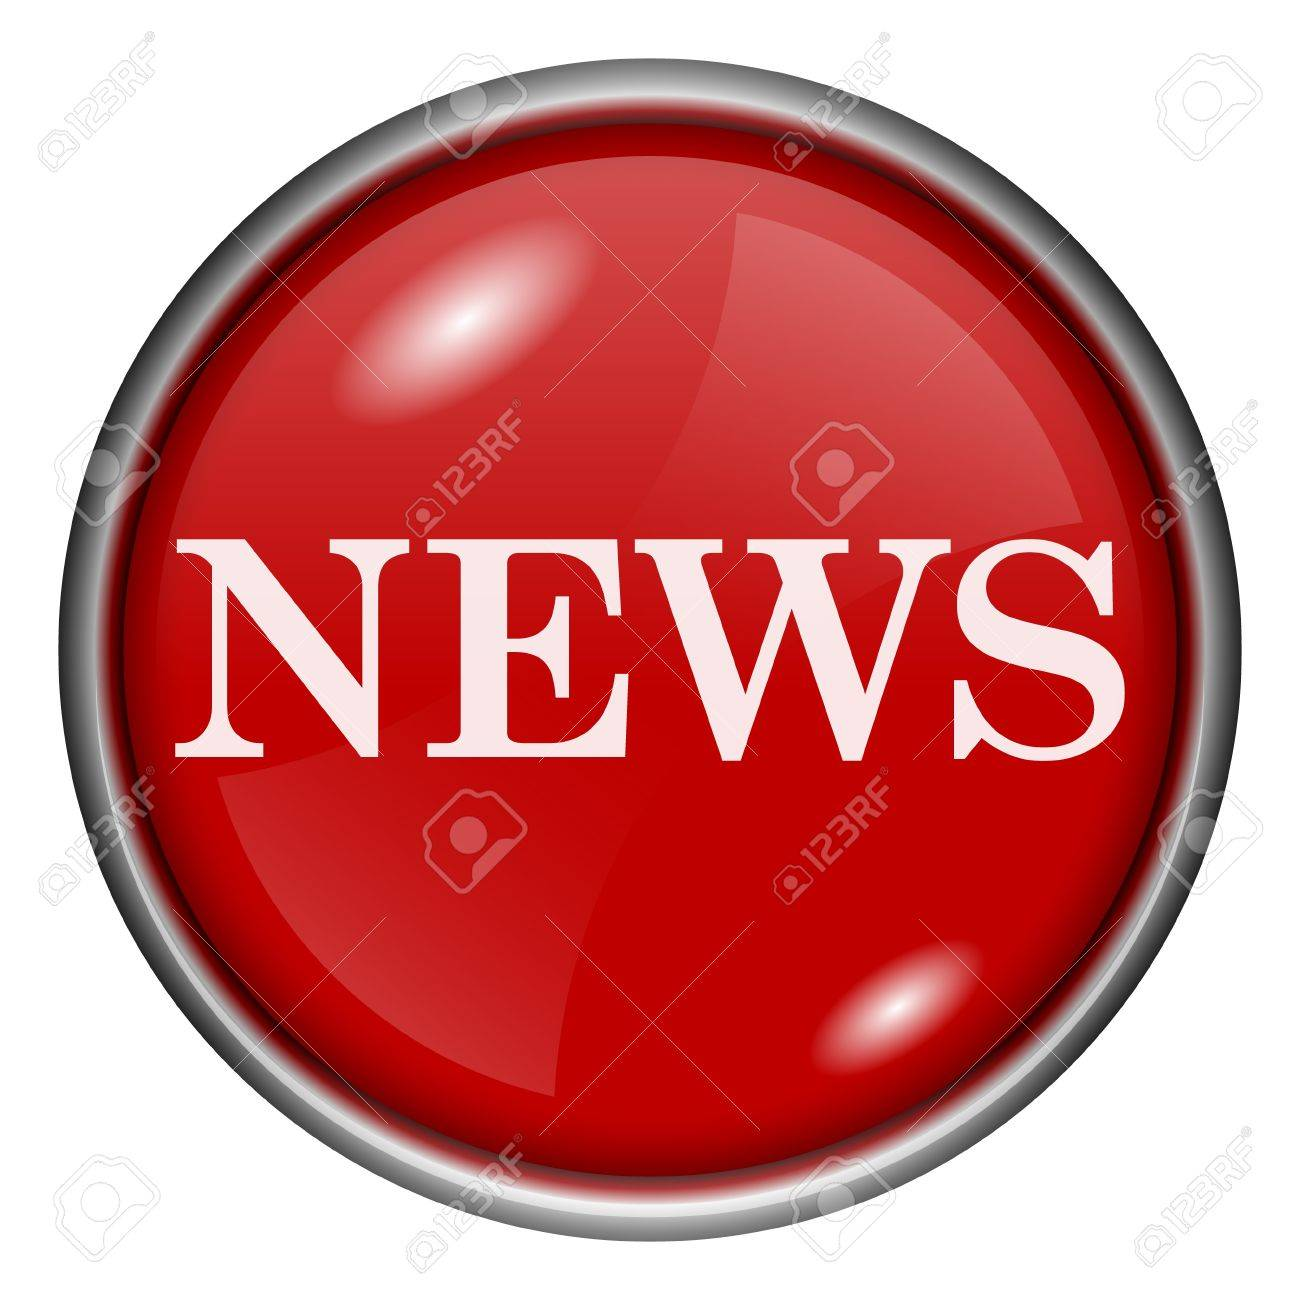 Red round glossy news icon with white design on red background Stock Photo - 20837273